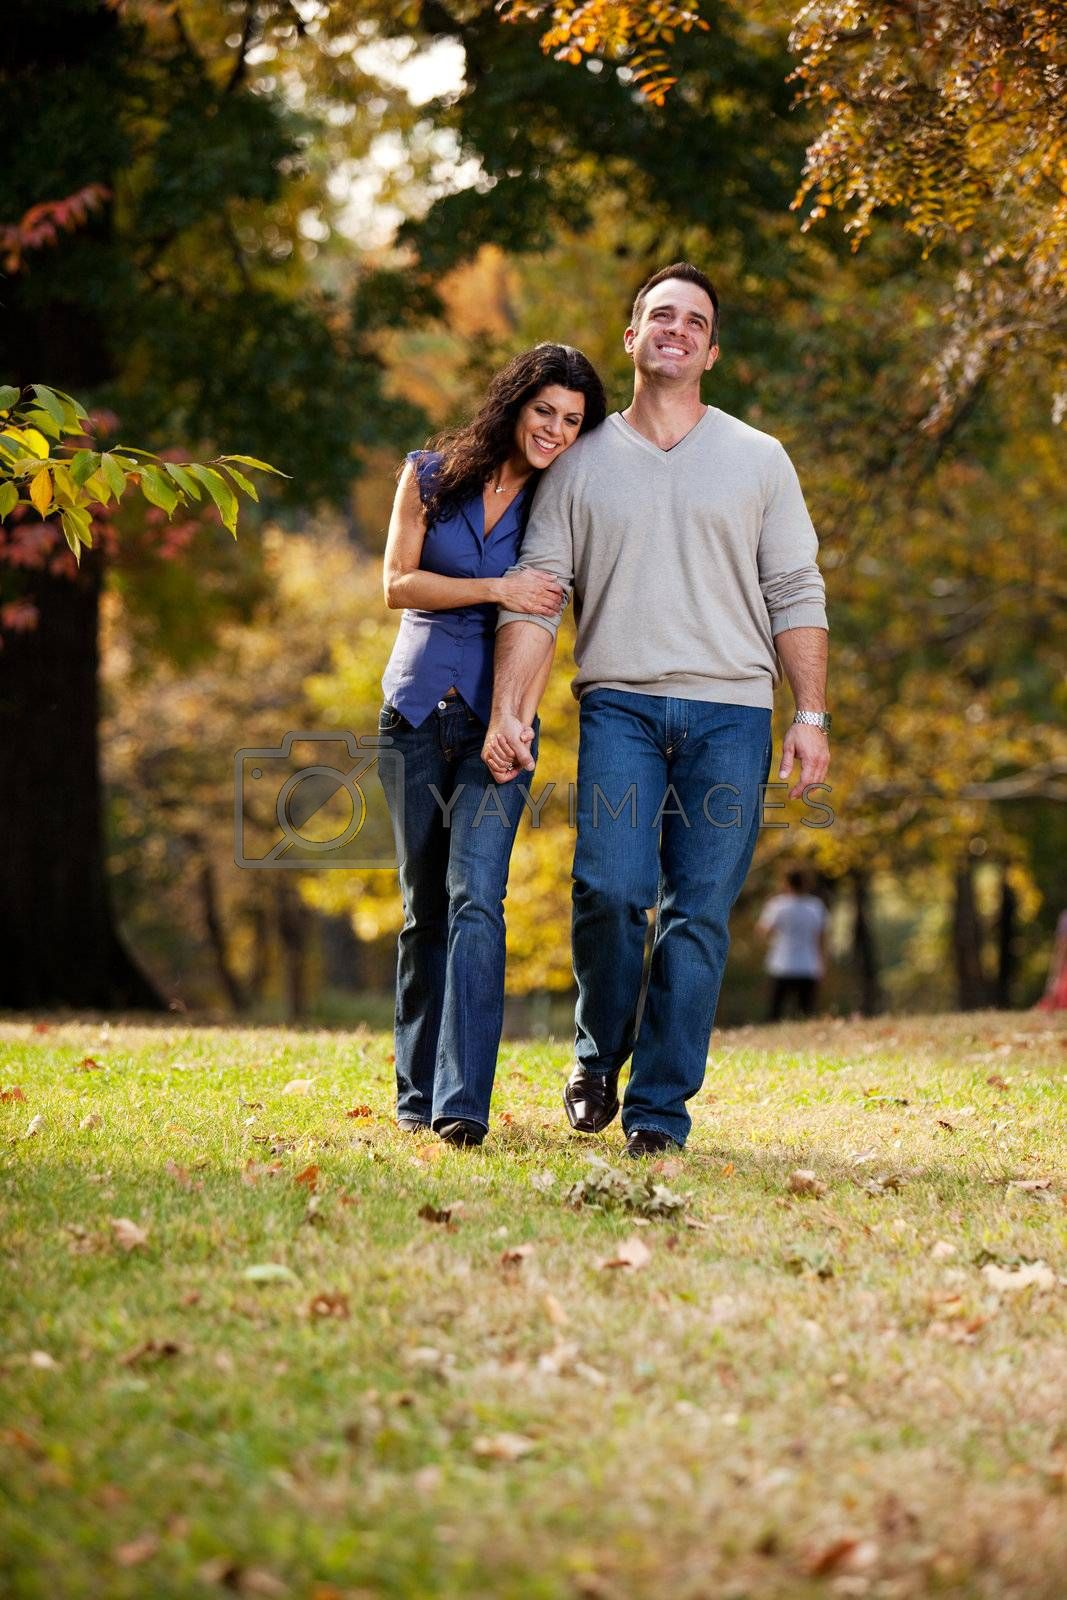 A happy couple walking in the park on grass